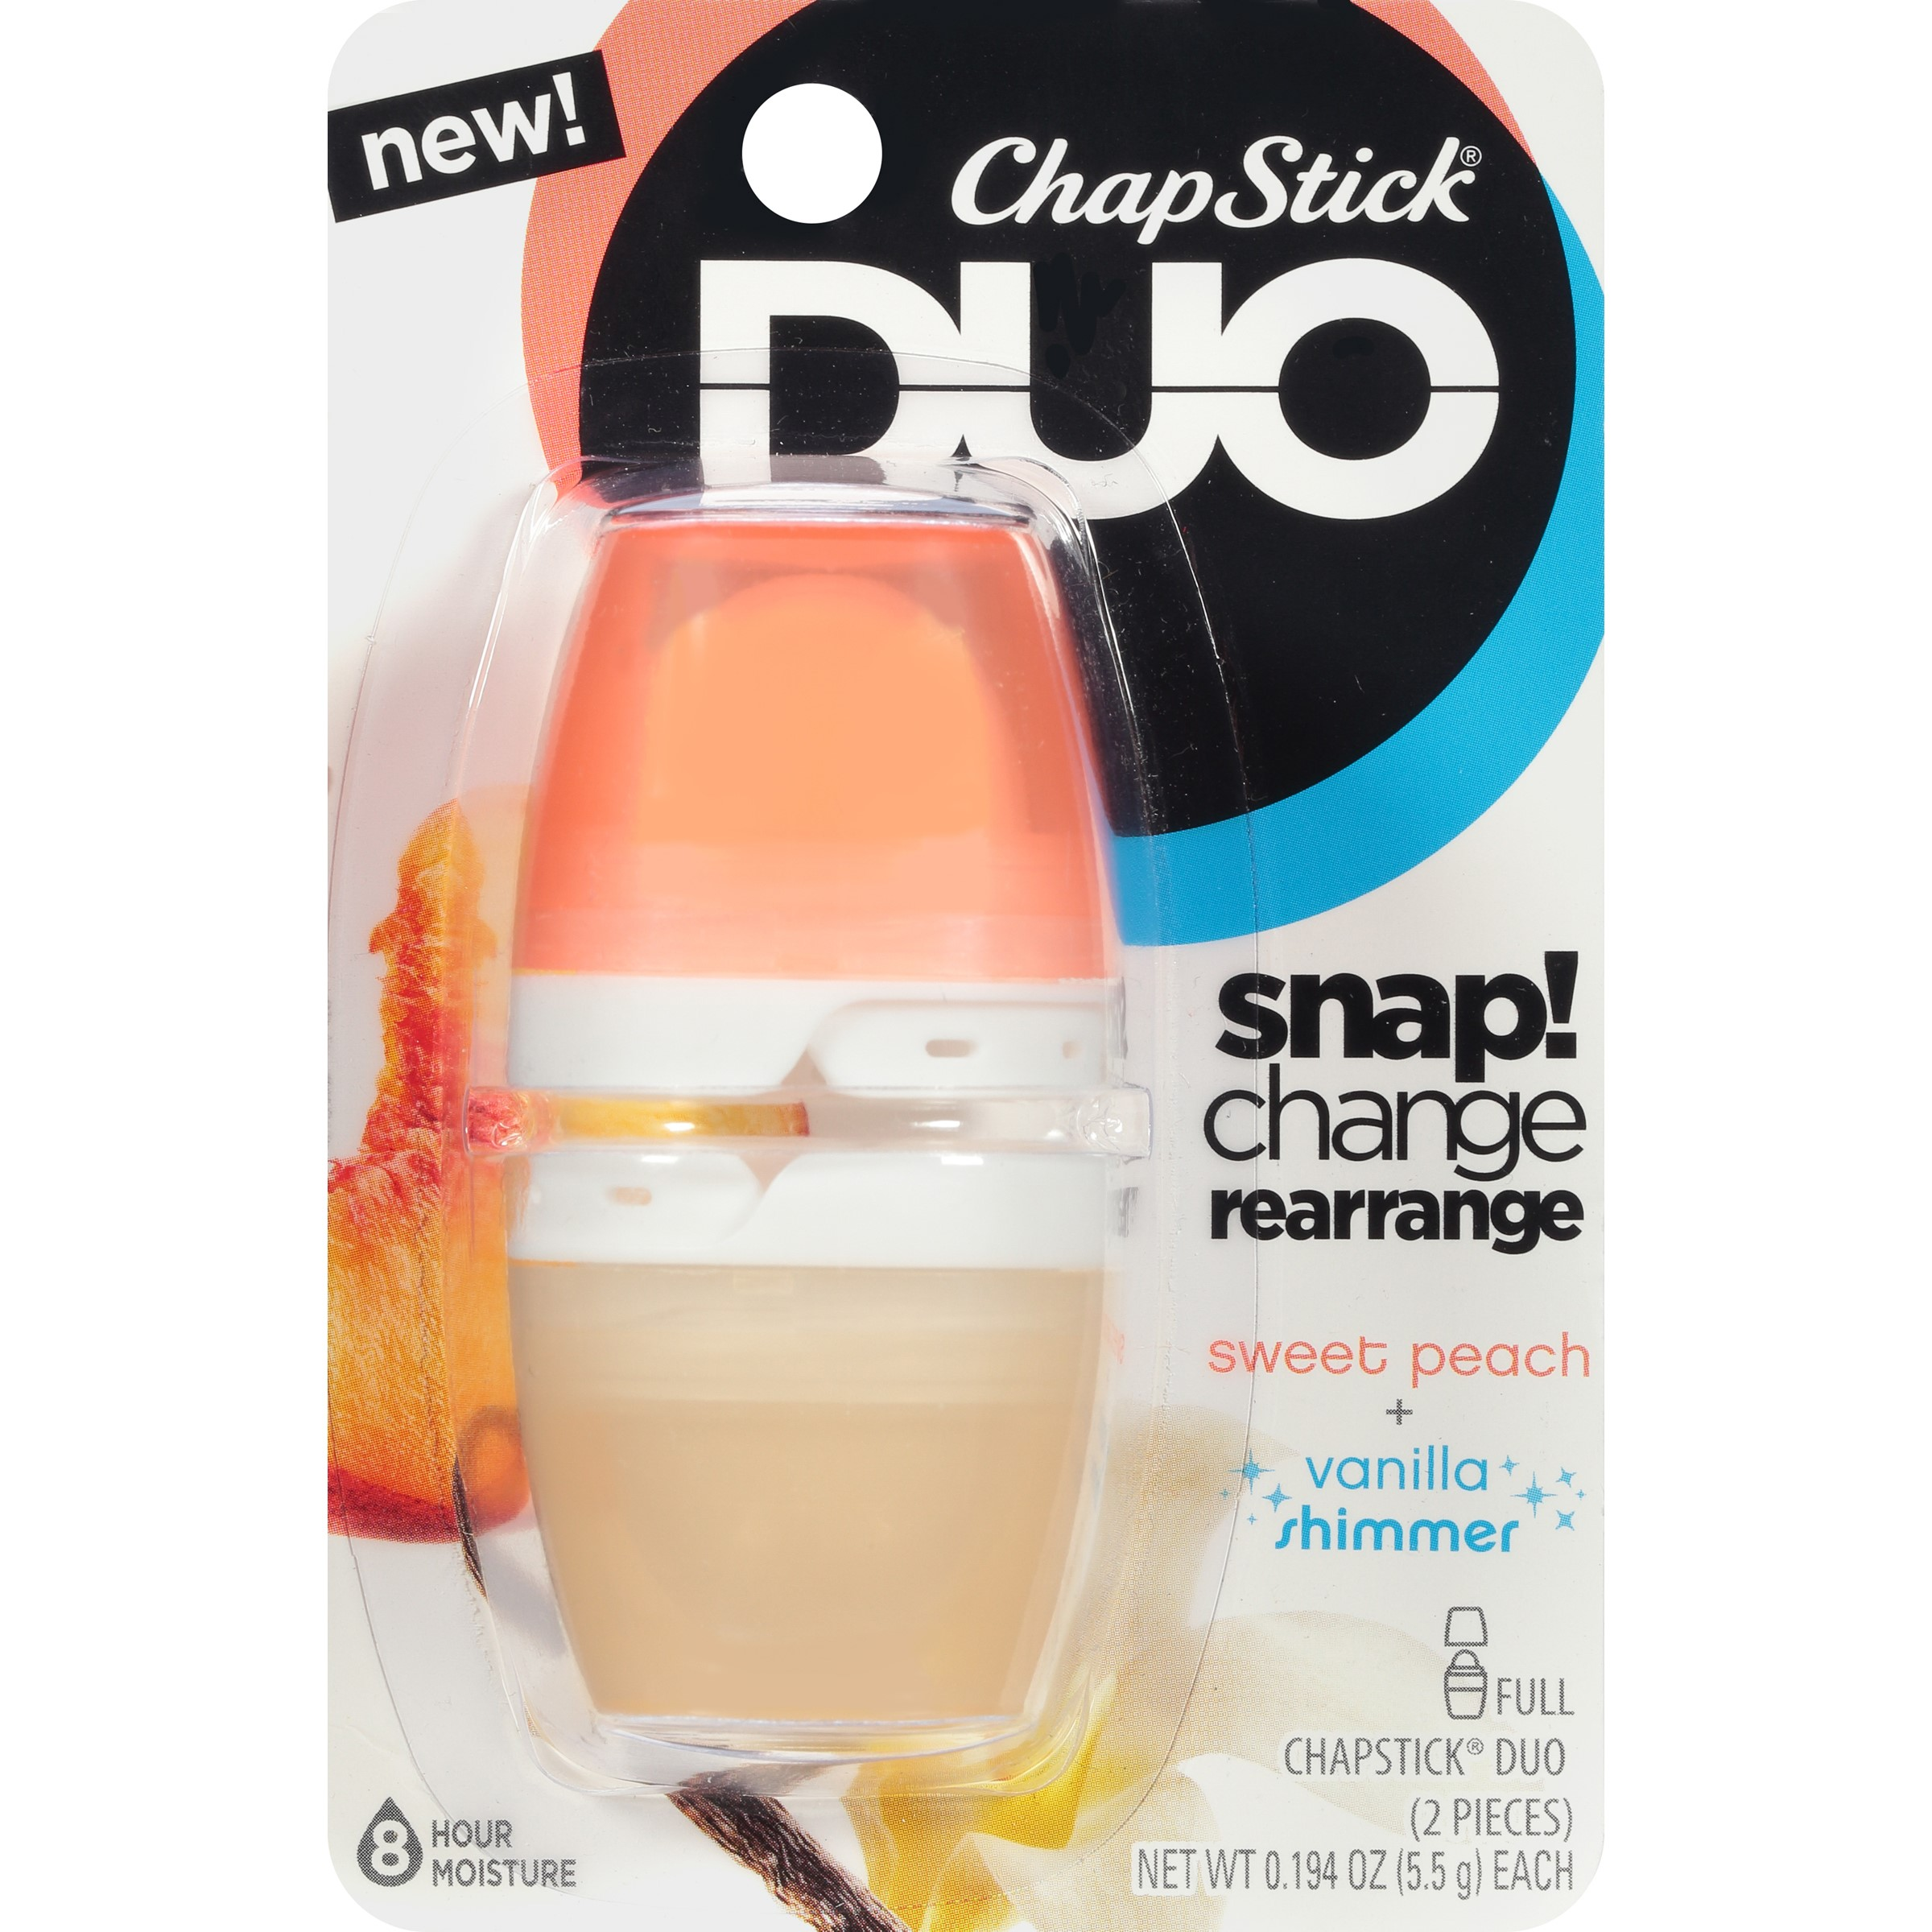 (2 pack) ChapStick Duo Blister Card, Sweet Peach Vanilla Shimmer, 0.4 Oz